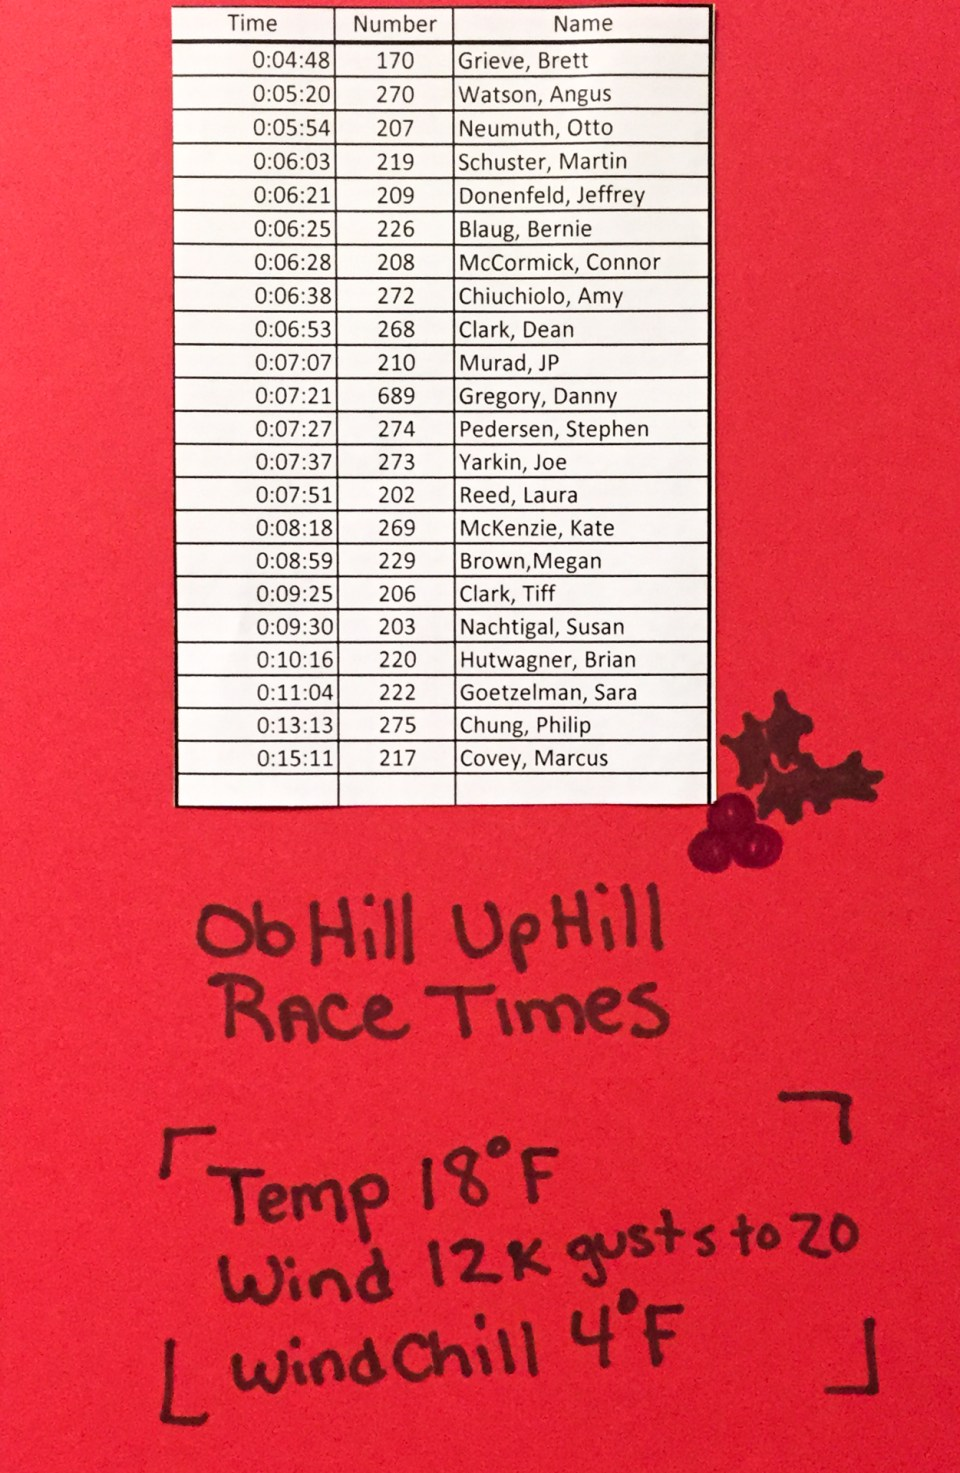 Ob Hill Uphill Race Times. I finished in 6:21, #5. Behind Otto again!